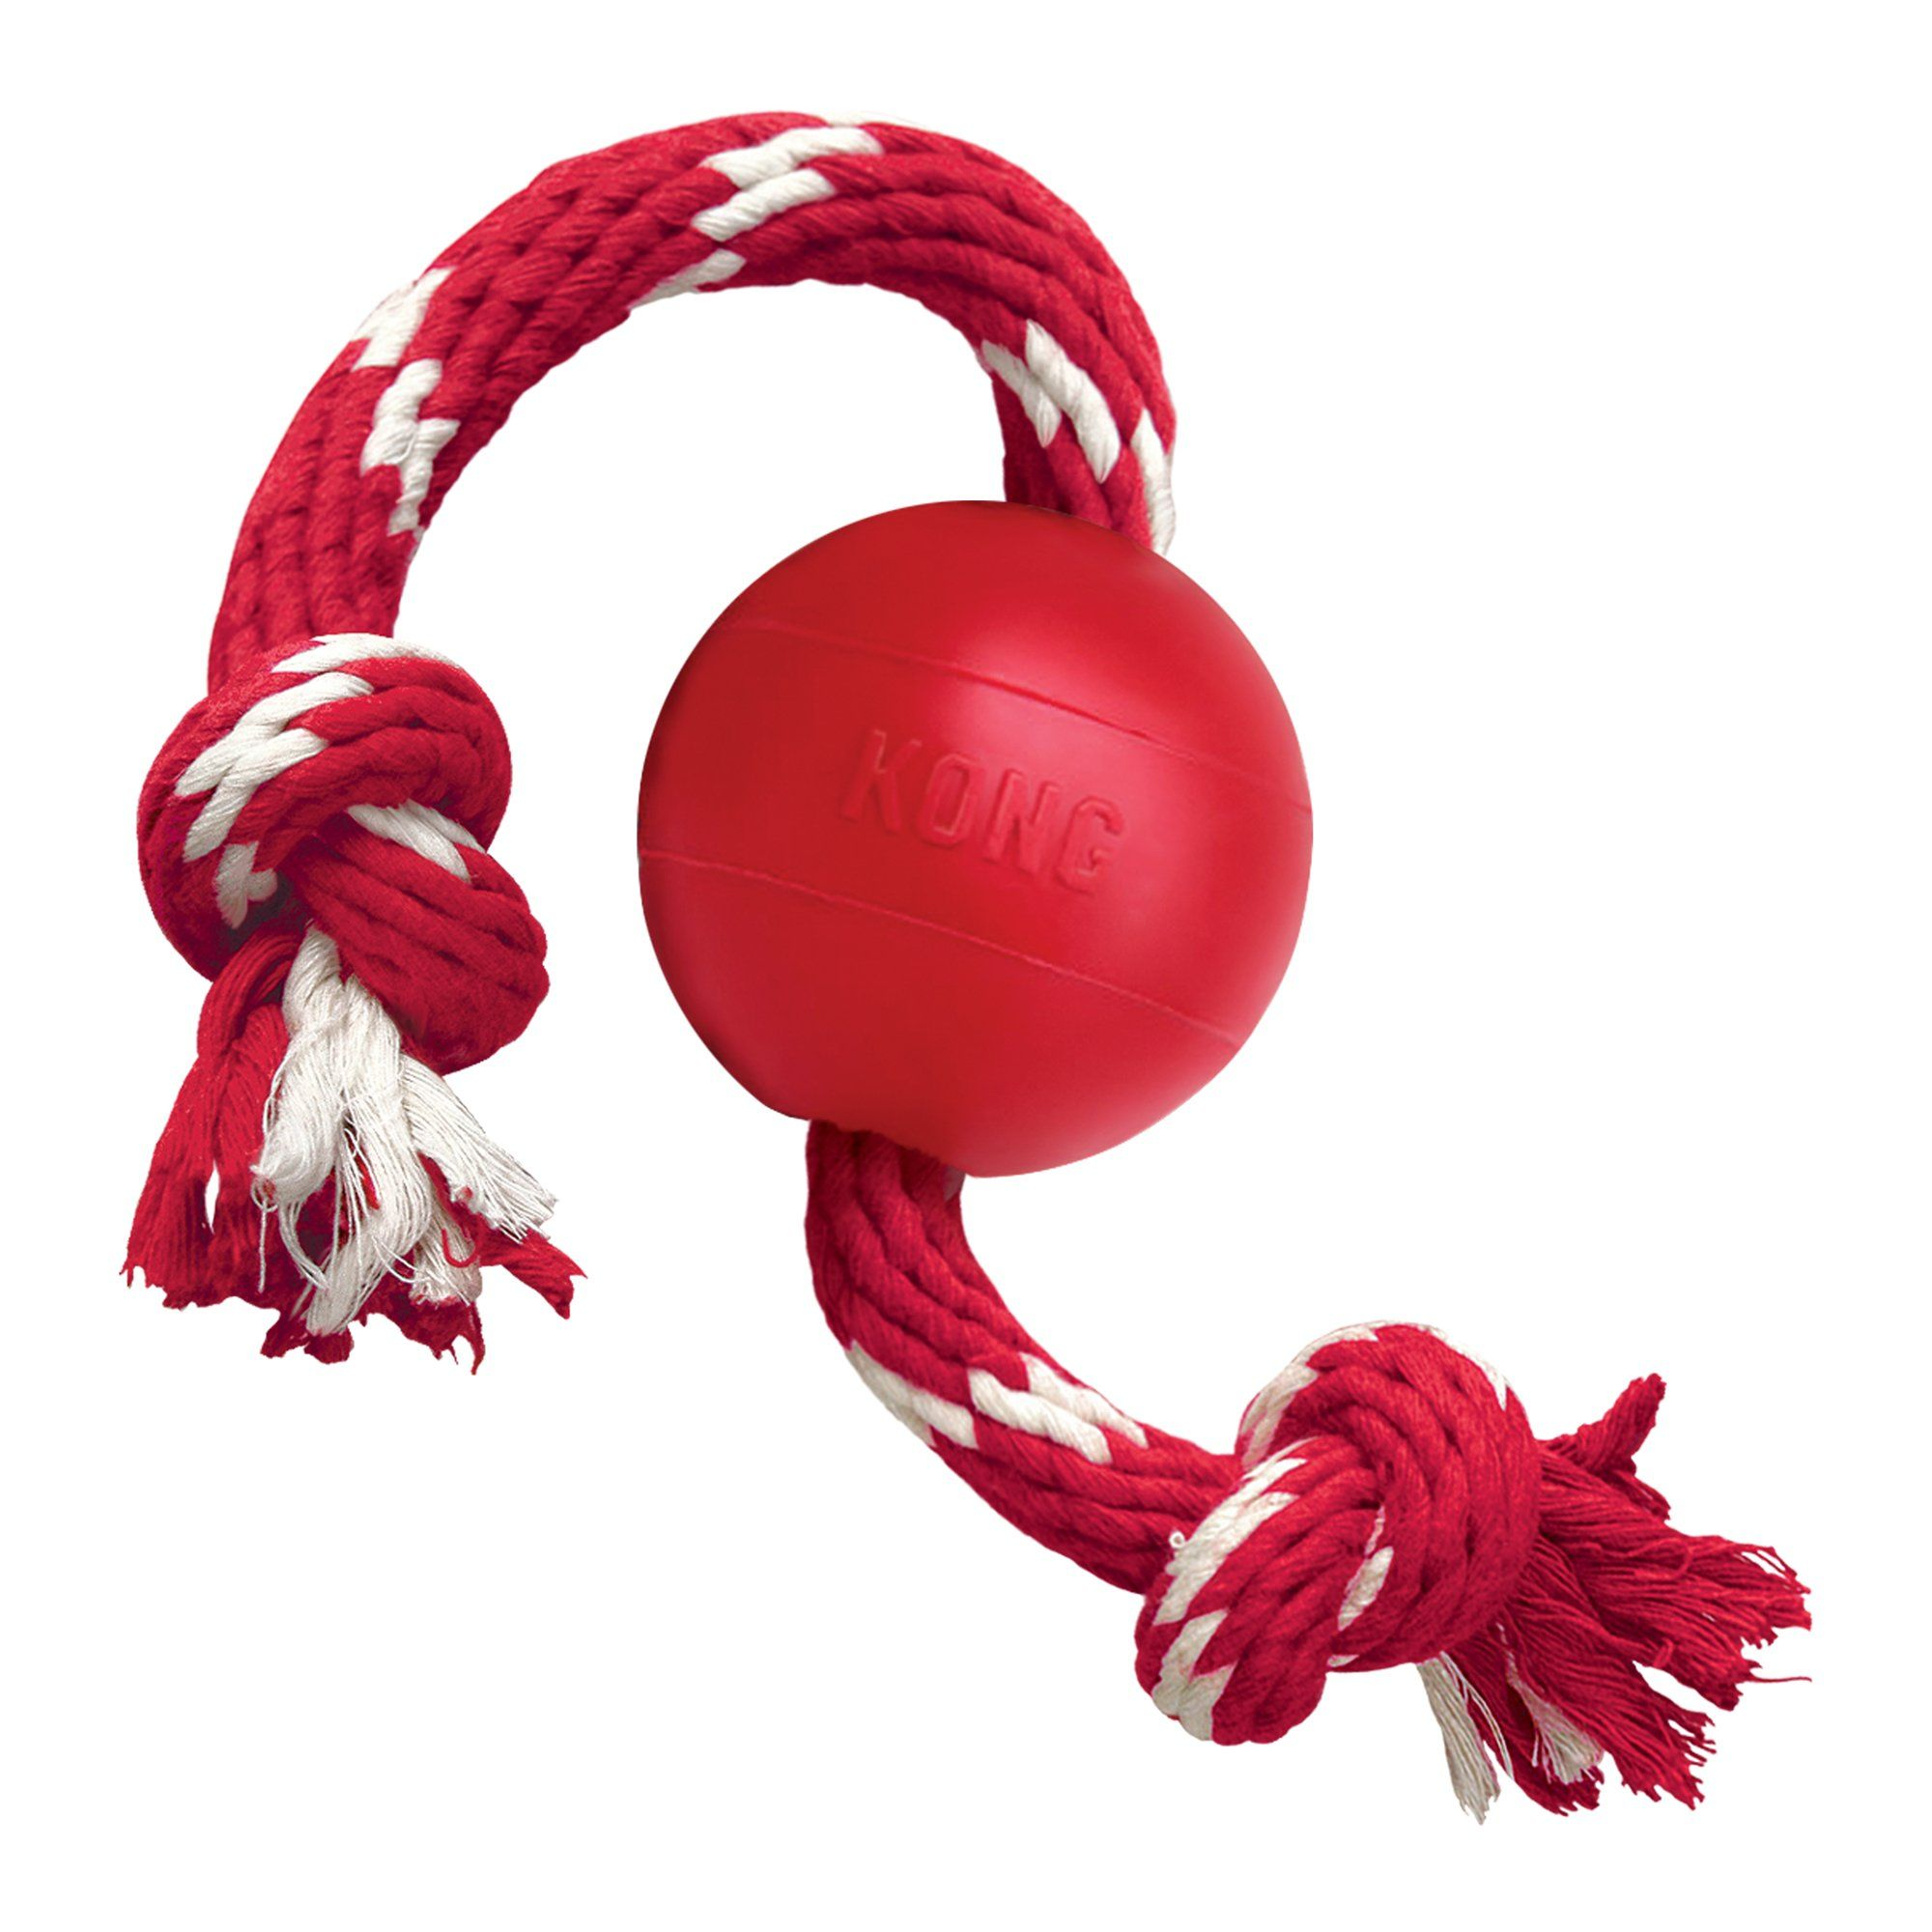 Kong Ball W Rope Dog Toy Small Red Small Dog Toys Kong Dog